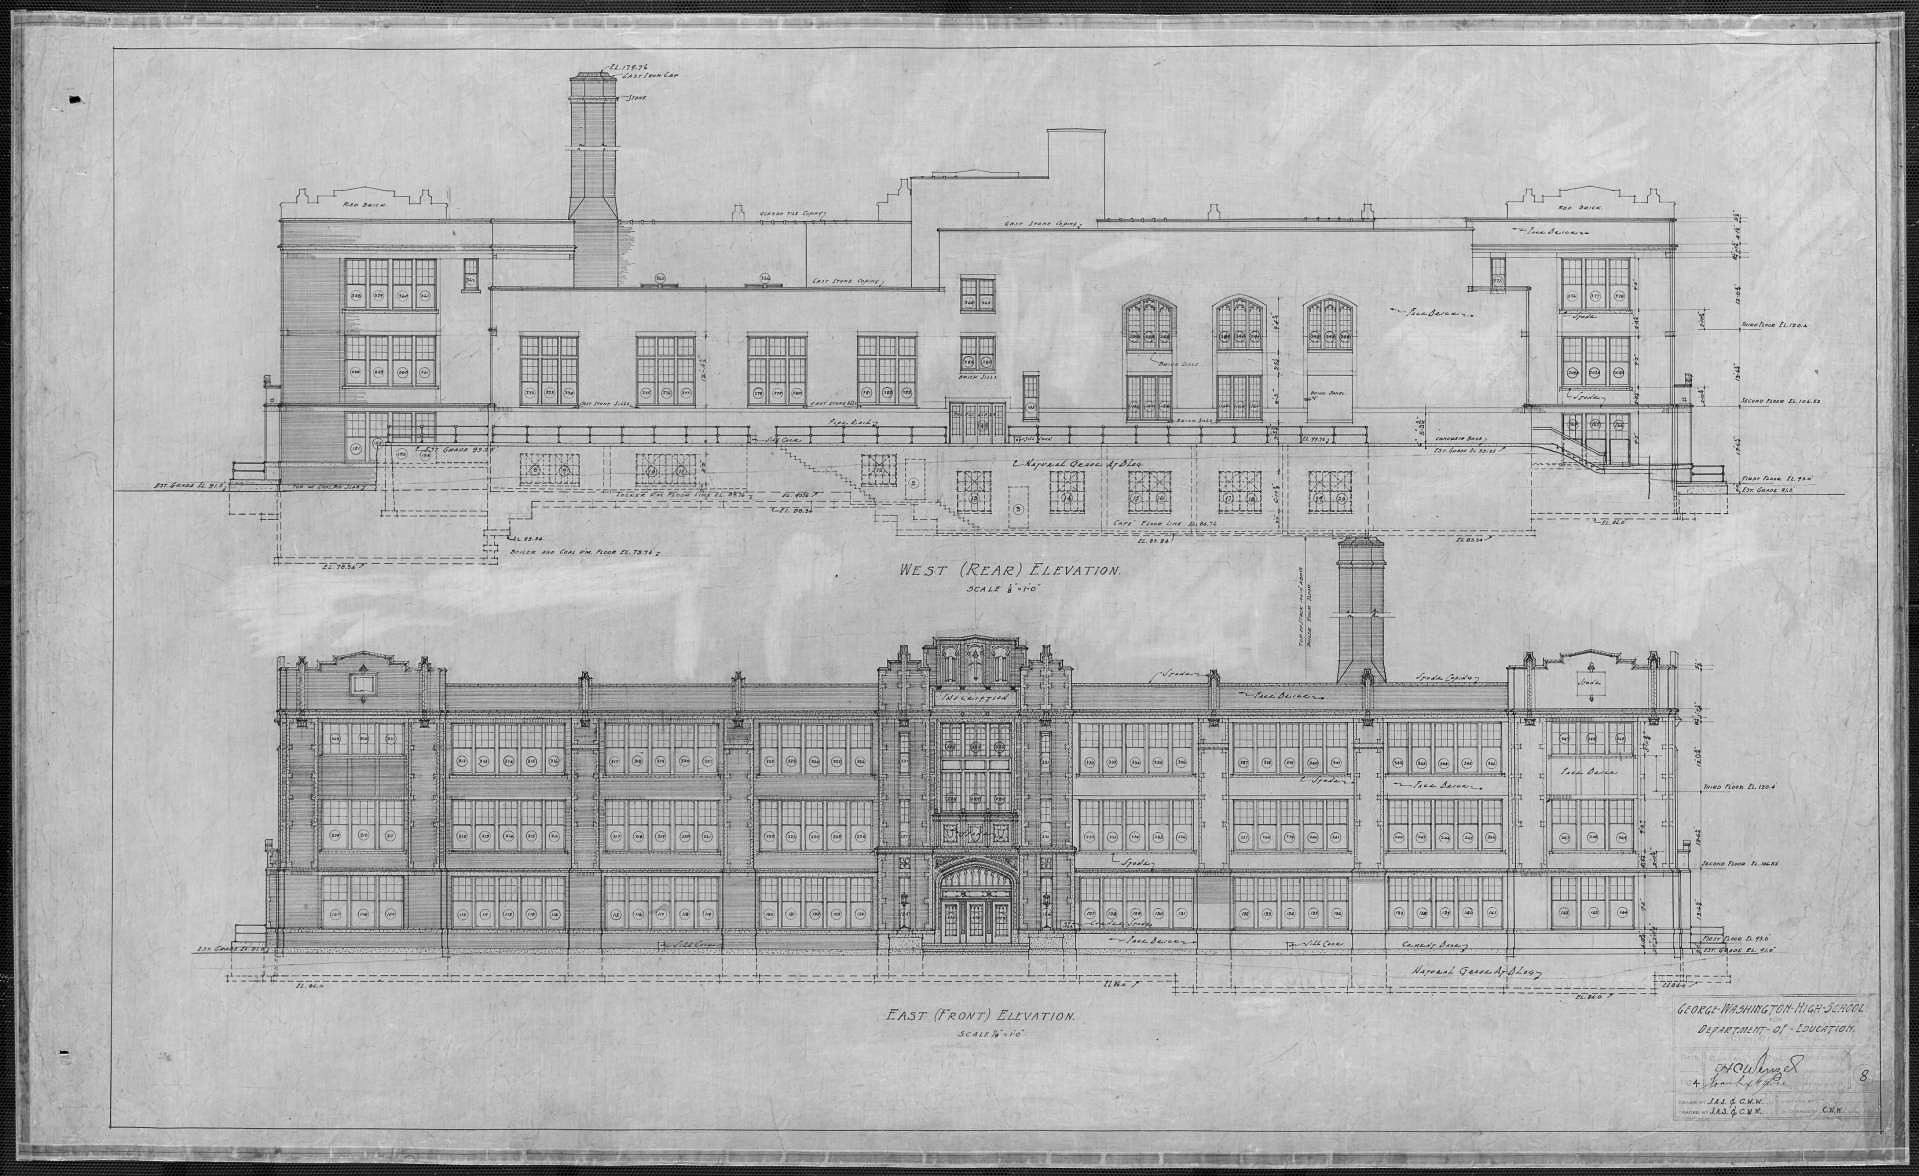 """An architectural drawing of the main (east-facing) entrance of Washington High School circa 1925. (Wigington, Clarence Wesley, 1883-1967. 1924.""""Washington (George) High School, Half Plans, Sections."""" University of Minnesota Libraries, Northwest Architectural Archives., Accessed June 26, 2021. https://umedia.lib.umn.edu/item/p16022coll254:214)"""